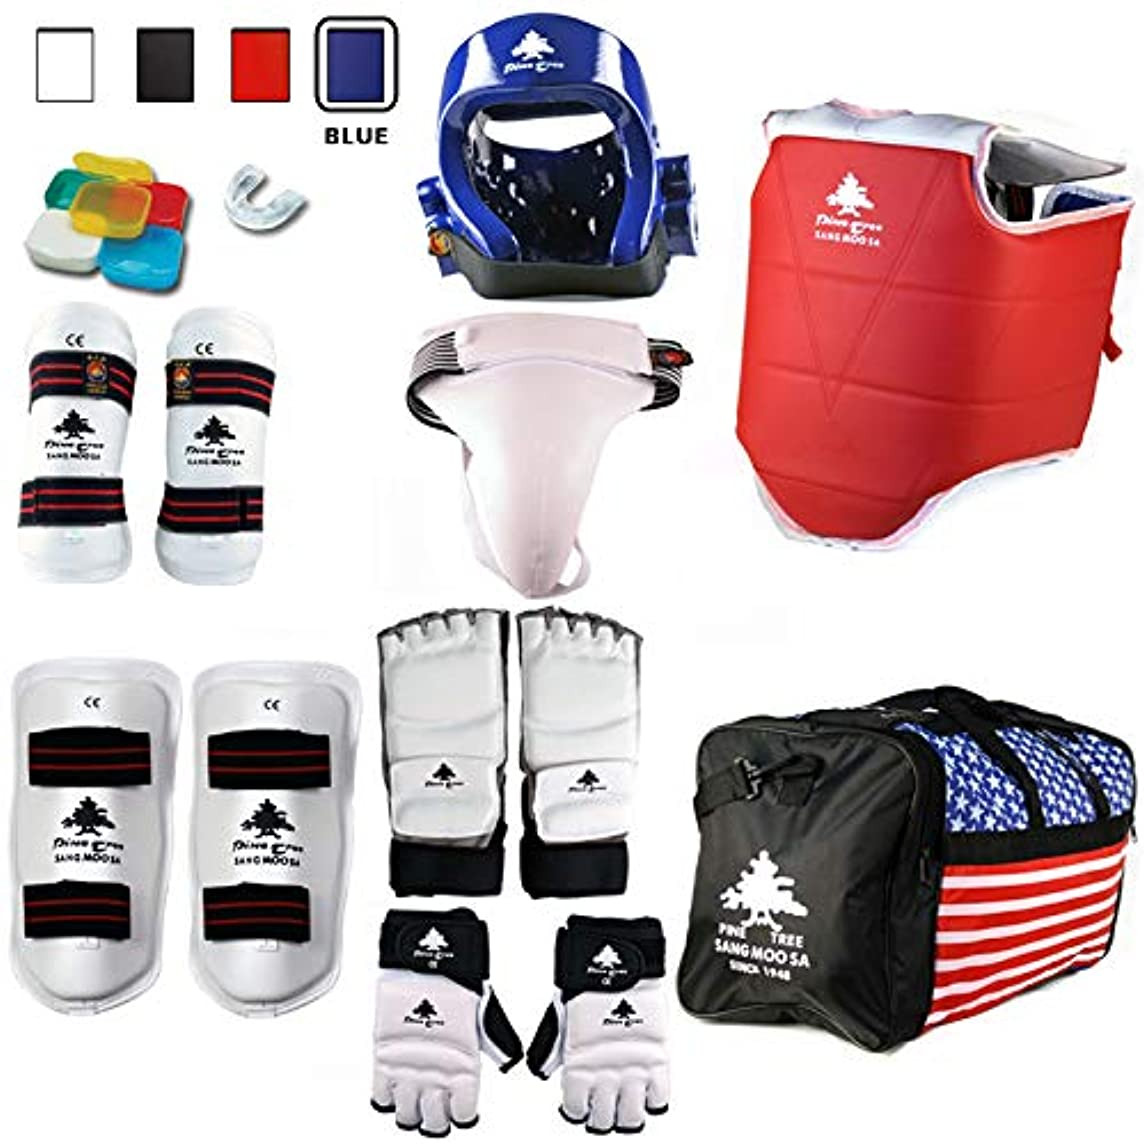 Pine Tree Complete Vinyl MMA, Taekwondo, Karate Sparring Gear Set with Bag, Shin, Hand, Foot, Groin Guard